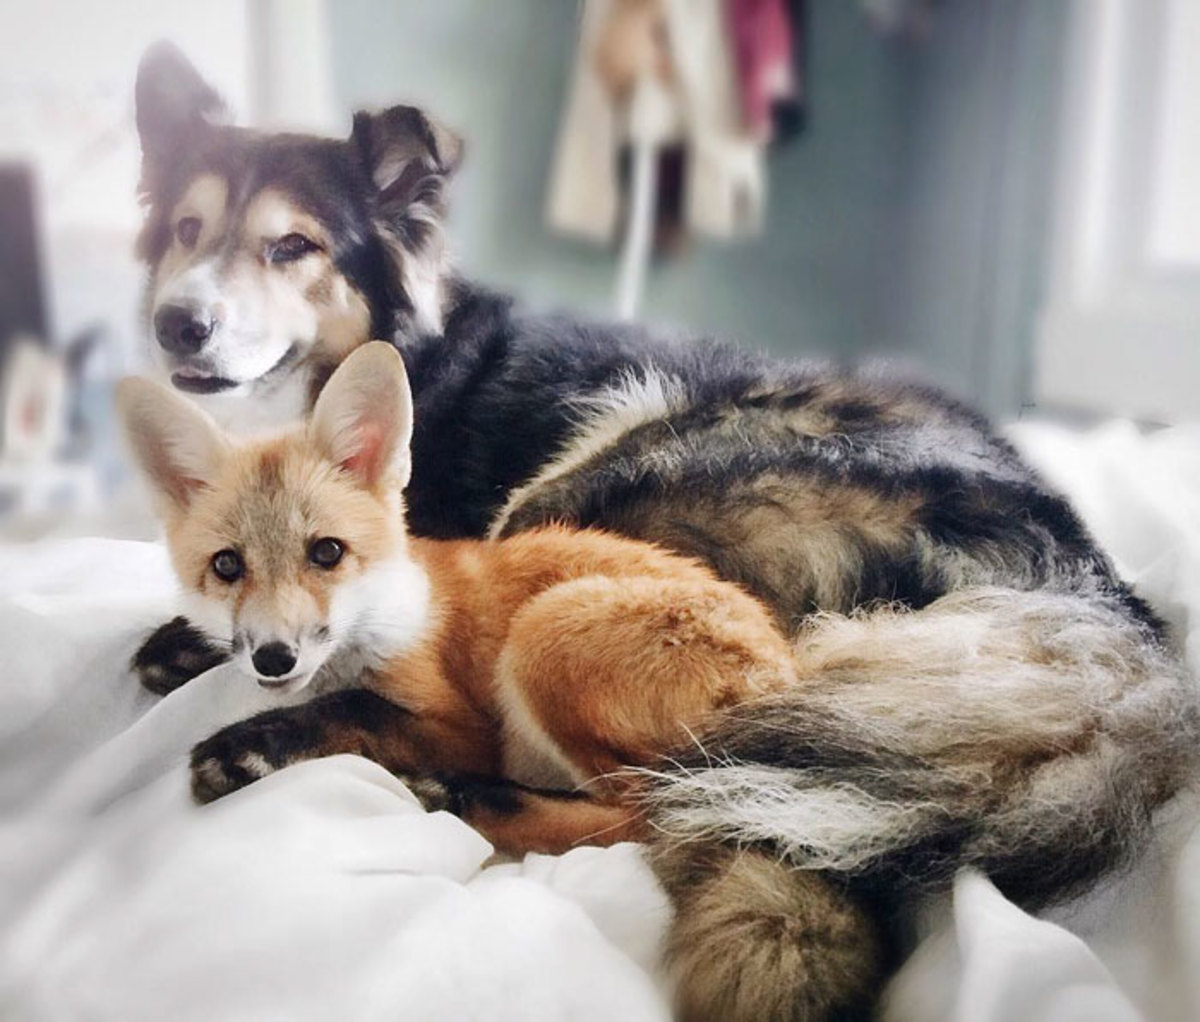 Fox bones are 30% lighter than Dogs